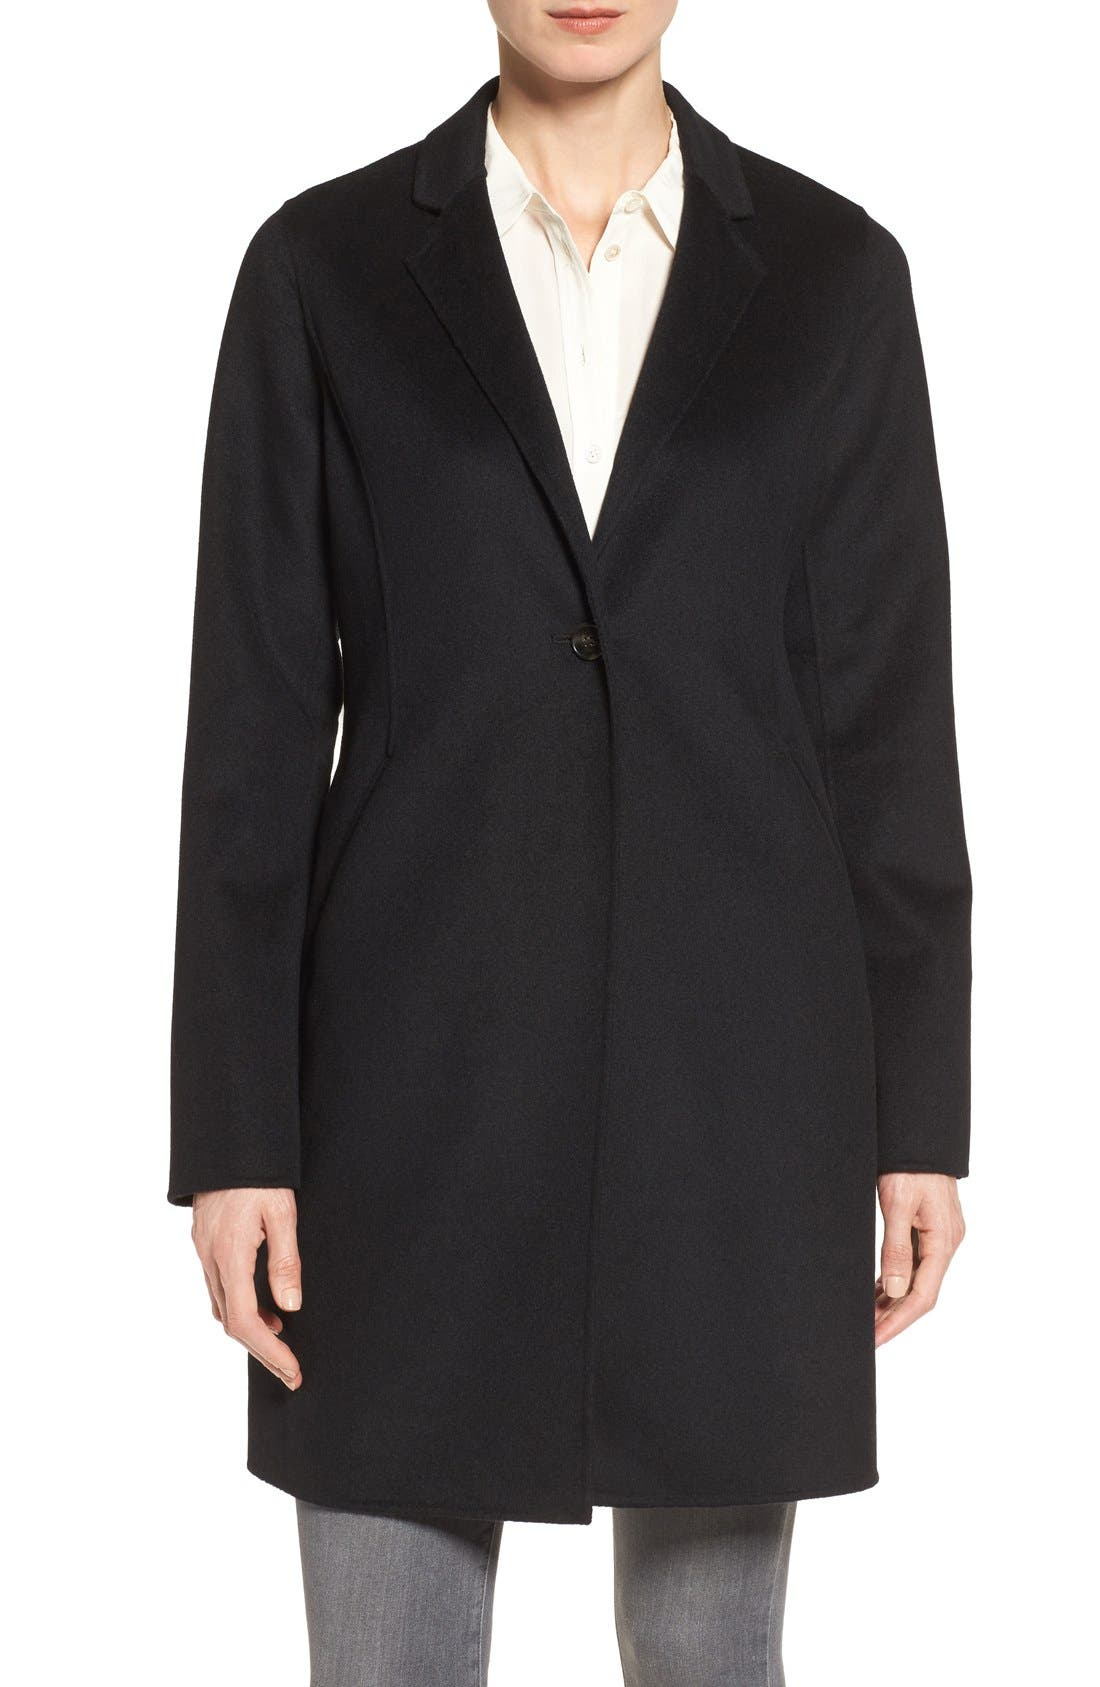 MICHAEL MICHAEL KORS Double Face Wool Blend Coat